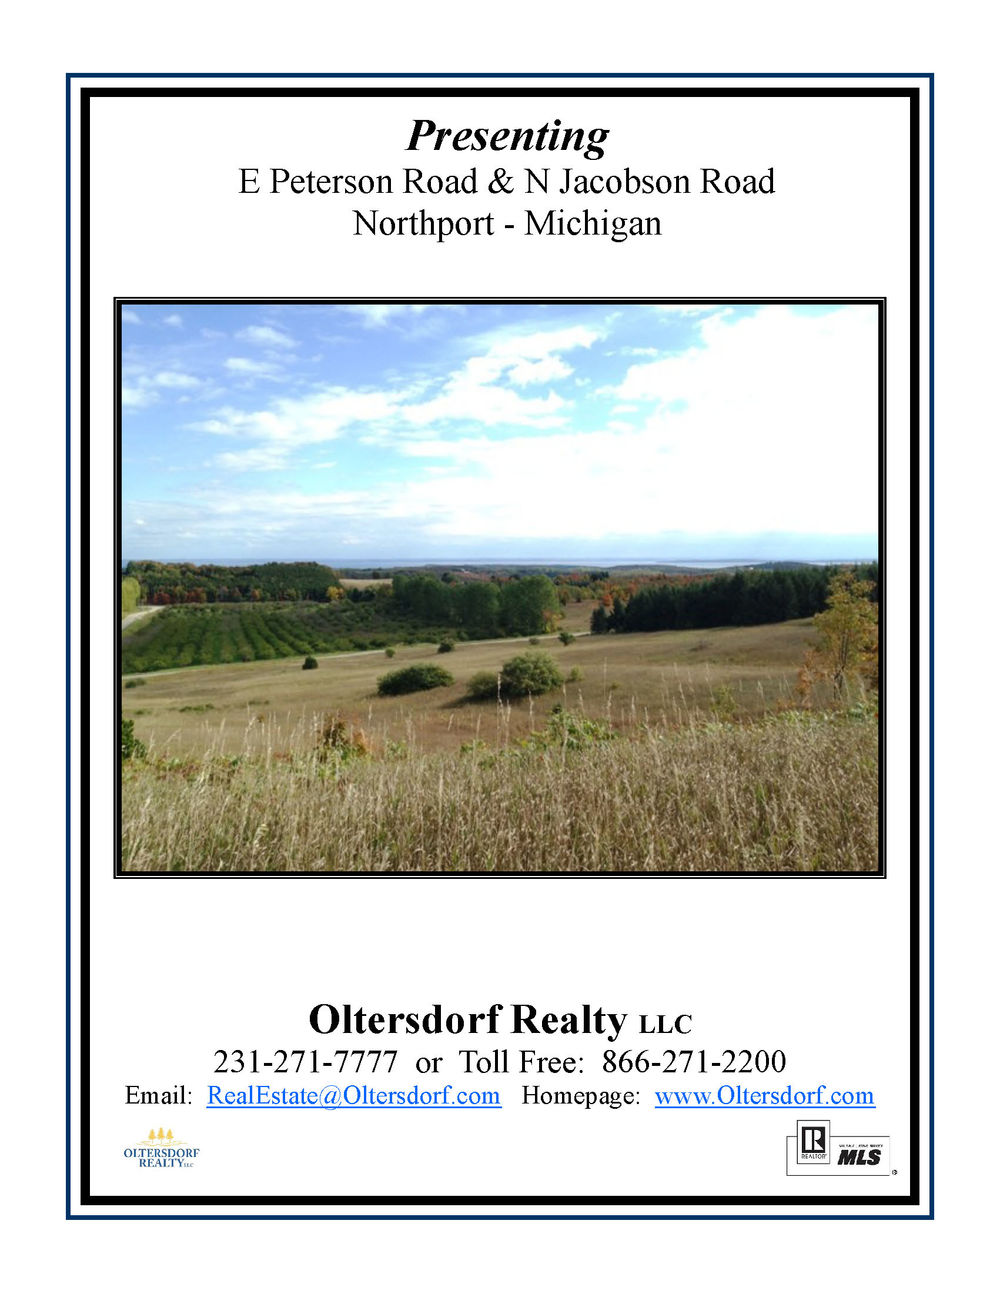 E Peterson Road & N Jacobson Road, Northport, water view acreage for sale by Oltersdorf Realty LLC (1).jpg